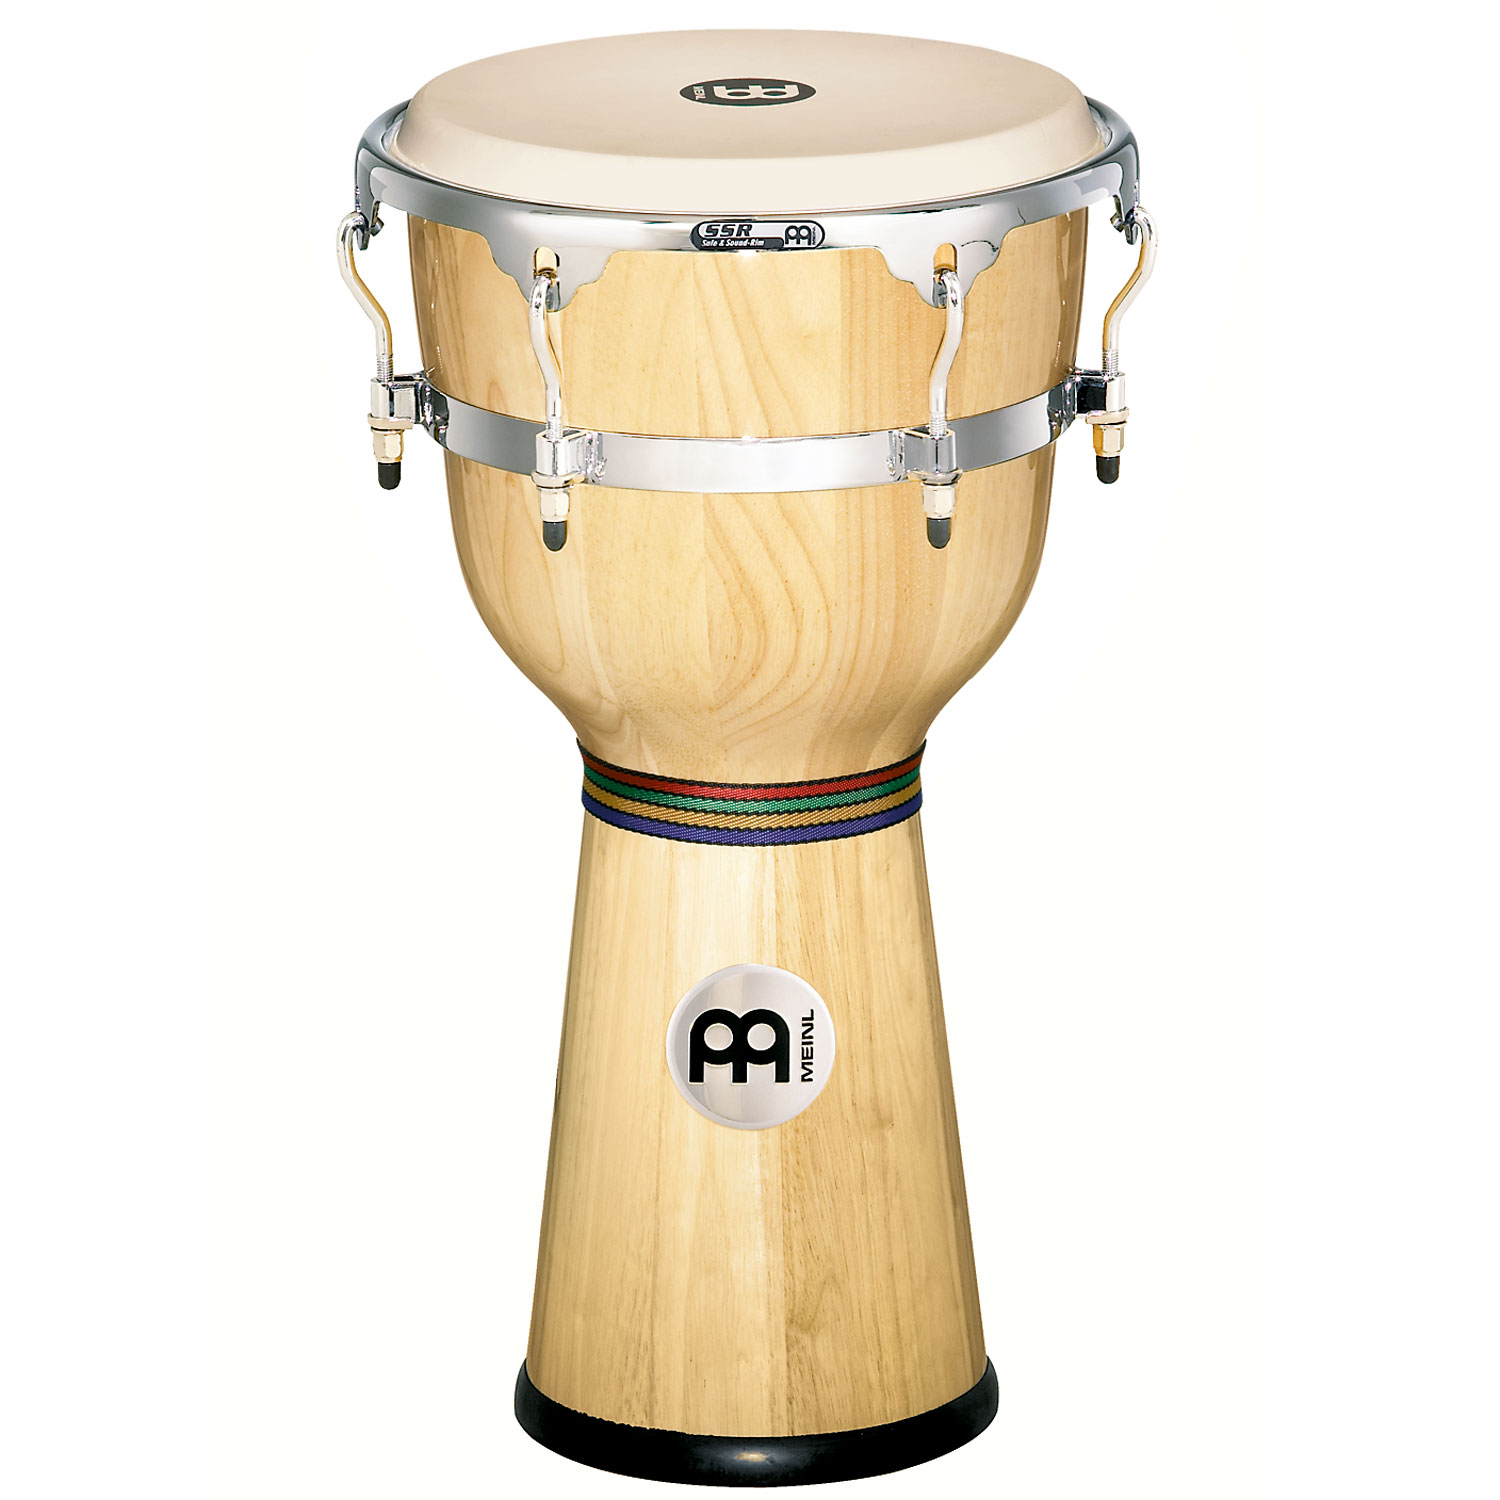 "Meinl 12"" x 24 1/4"" Floatune Wood Djembe in Natural Finish"